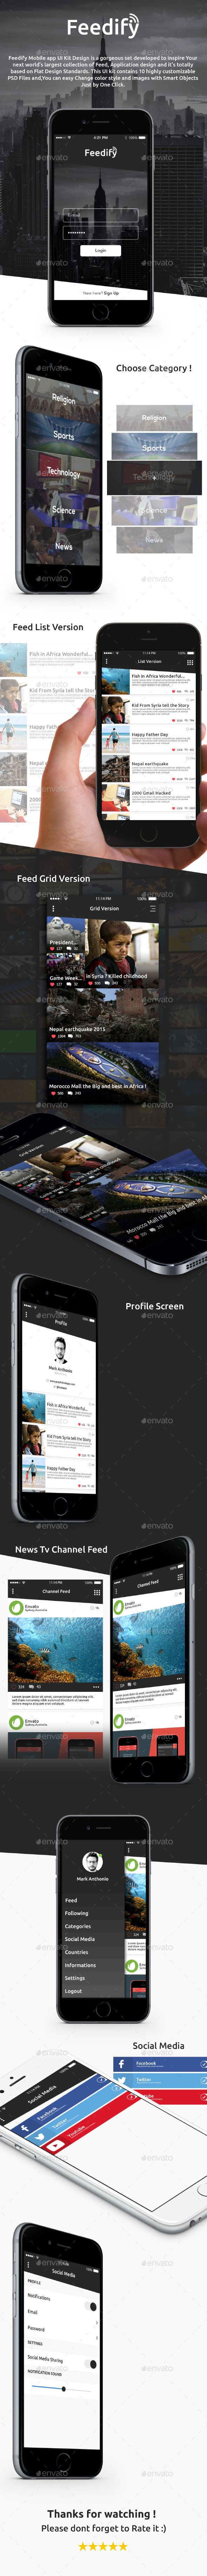 Feedify News Feed Mobile App UI Kit Design #userinterface Download: http://graphicriver.net/item/feedify-news-feed-mobile-app-ui-kit-design/11924759?ref=ksioks